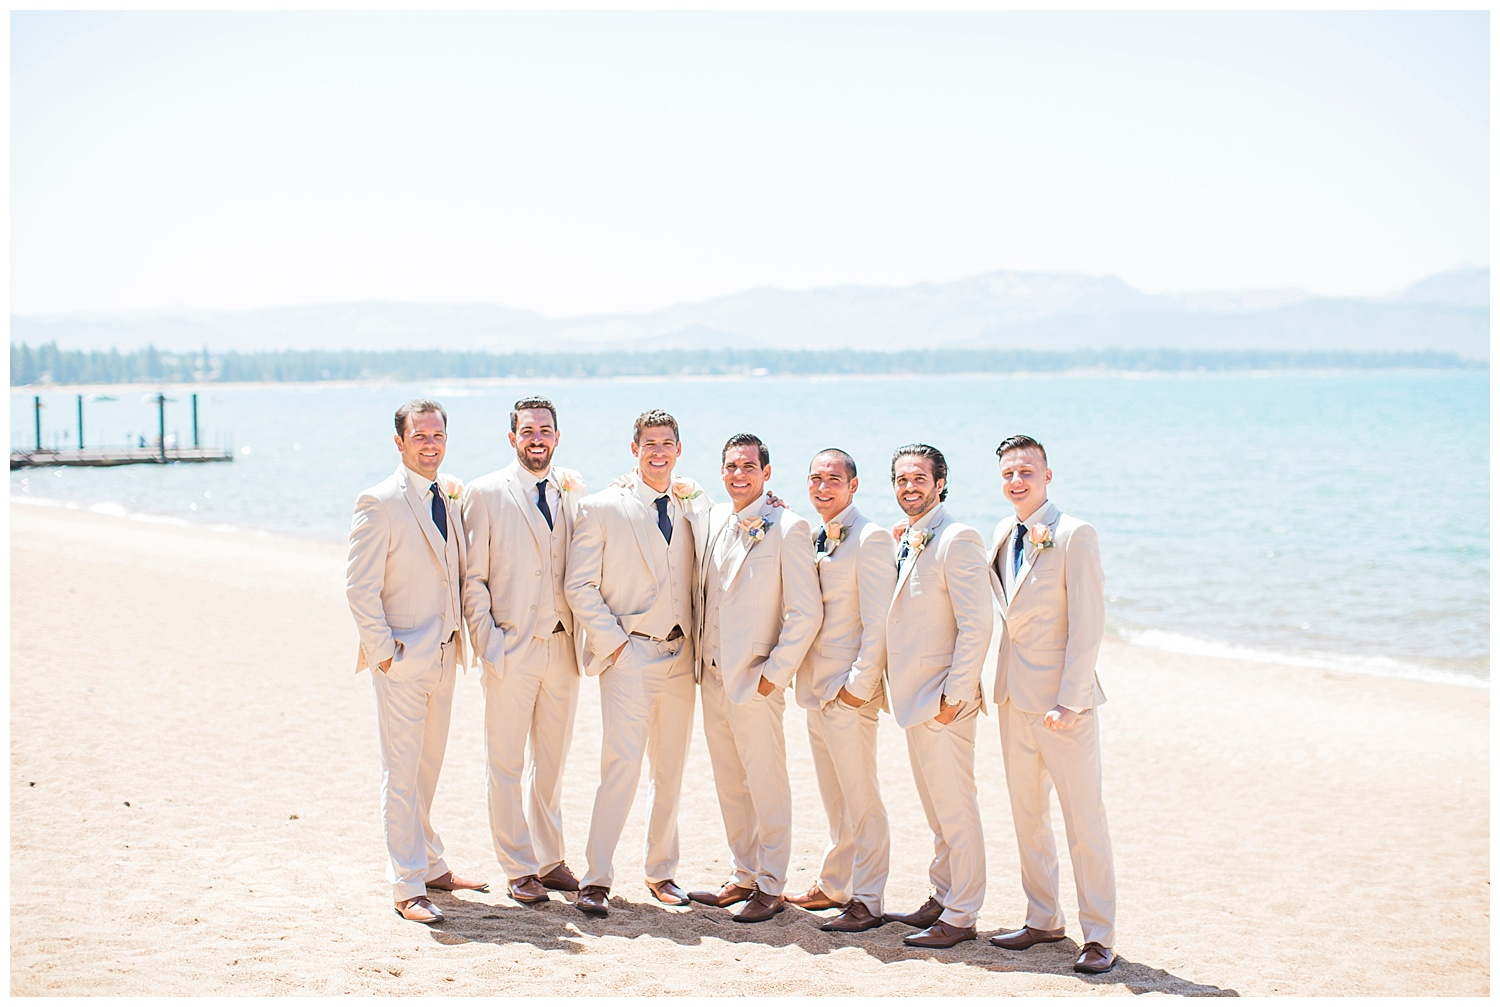 tahoe-wedding-edgewood-nicole-quiroz-photographer-lake-tahoe-california-sacramento-NICOLEQUIROZ_021.jpg